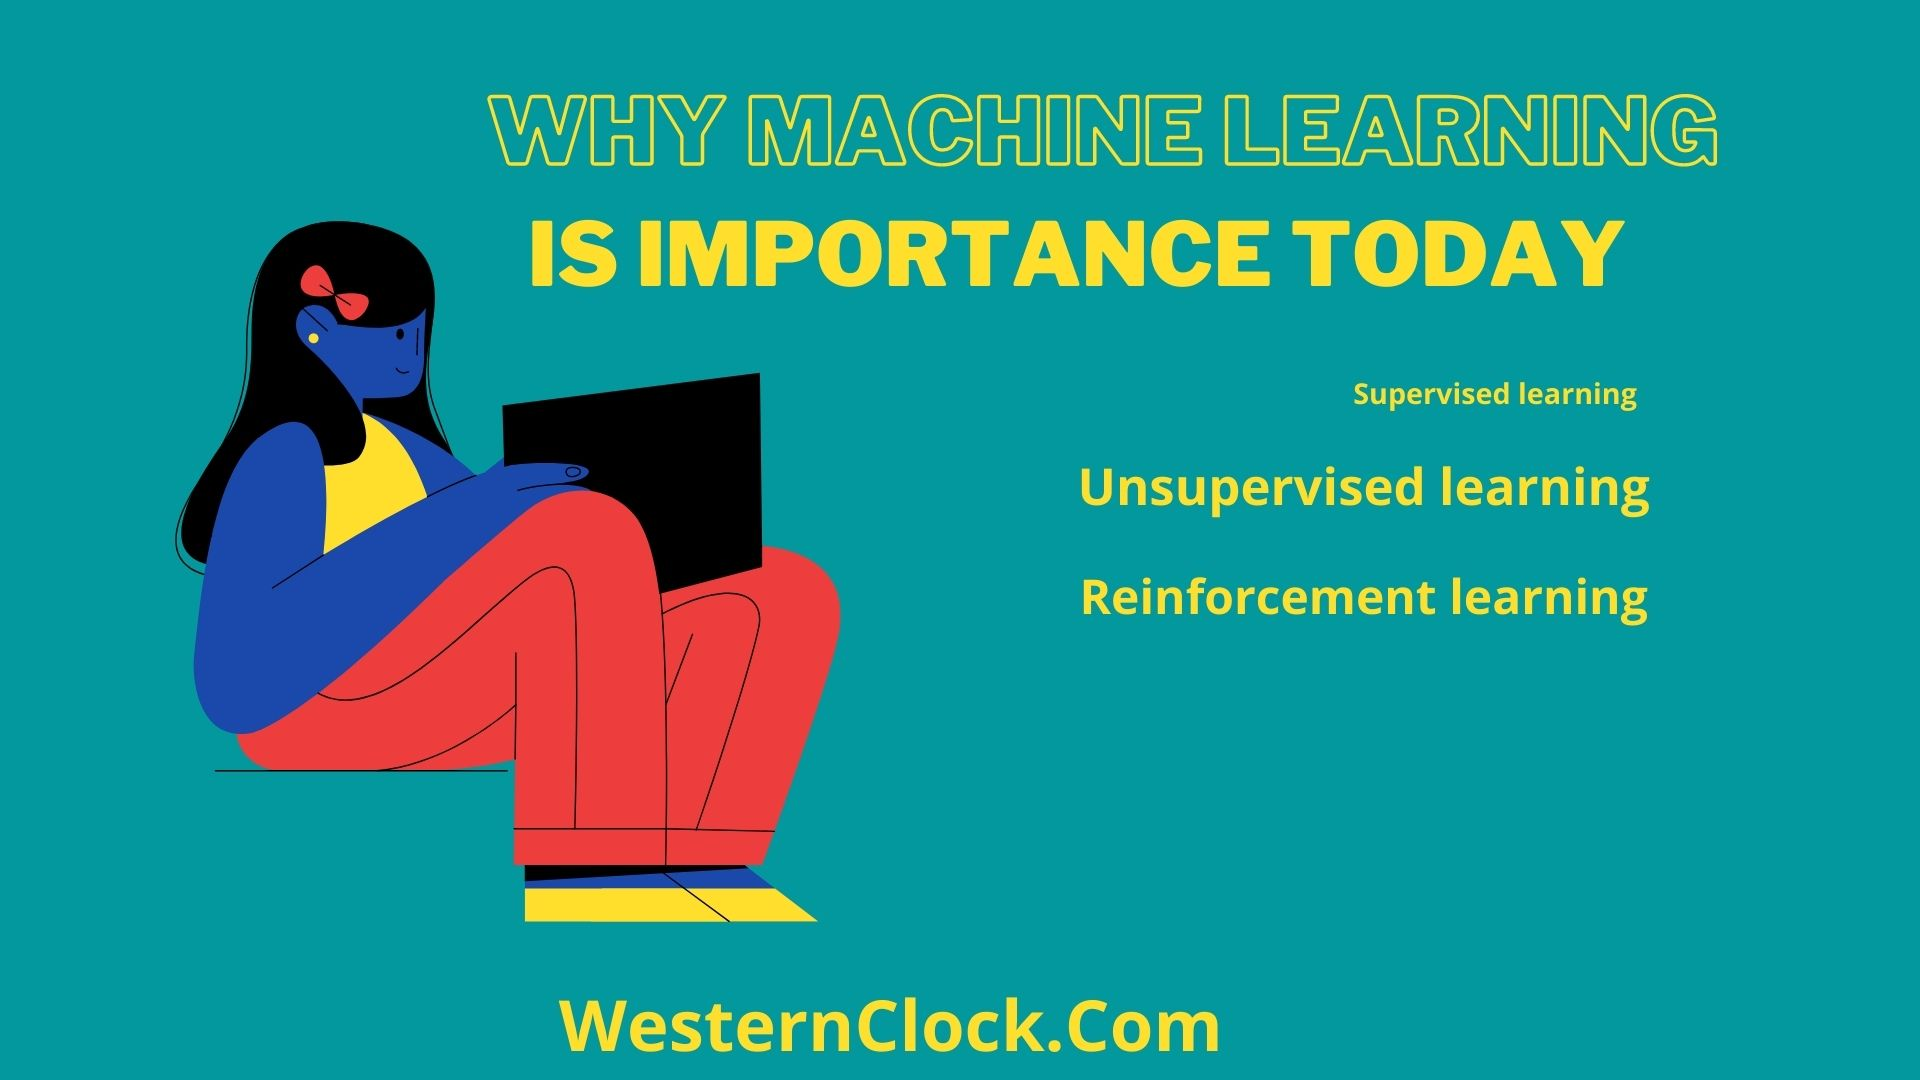 Why Machine Learning is Importance Today